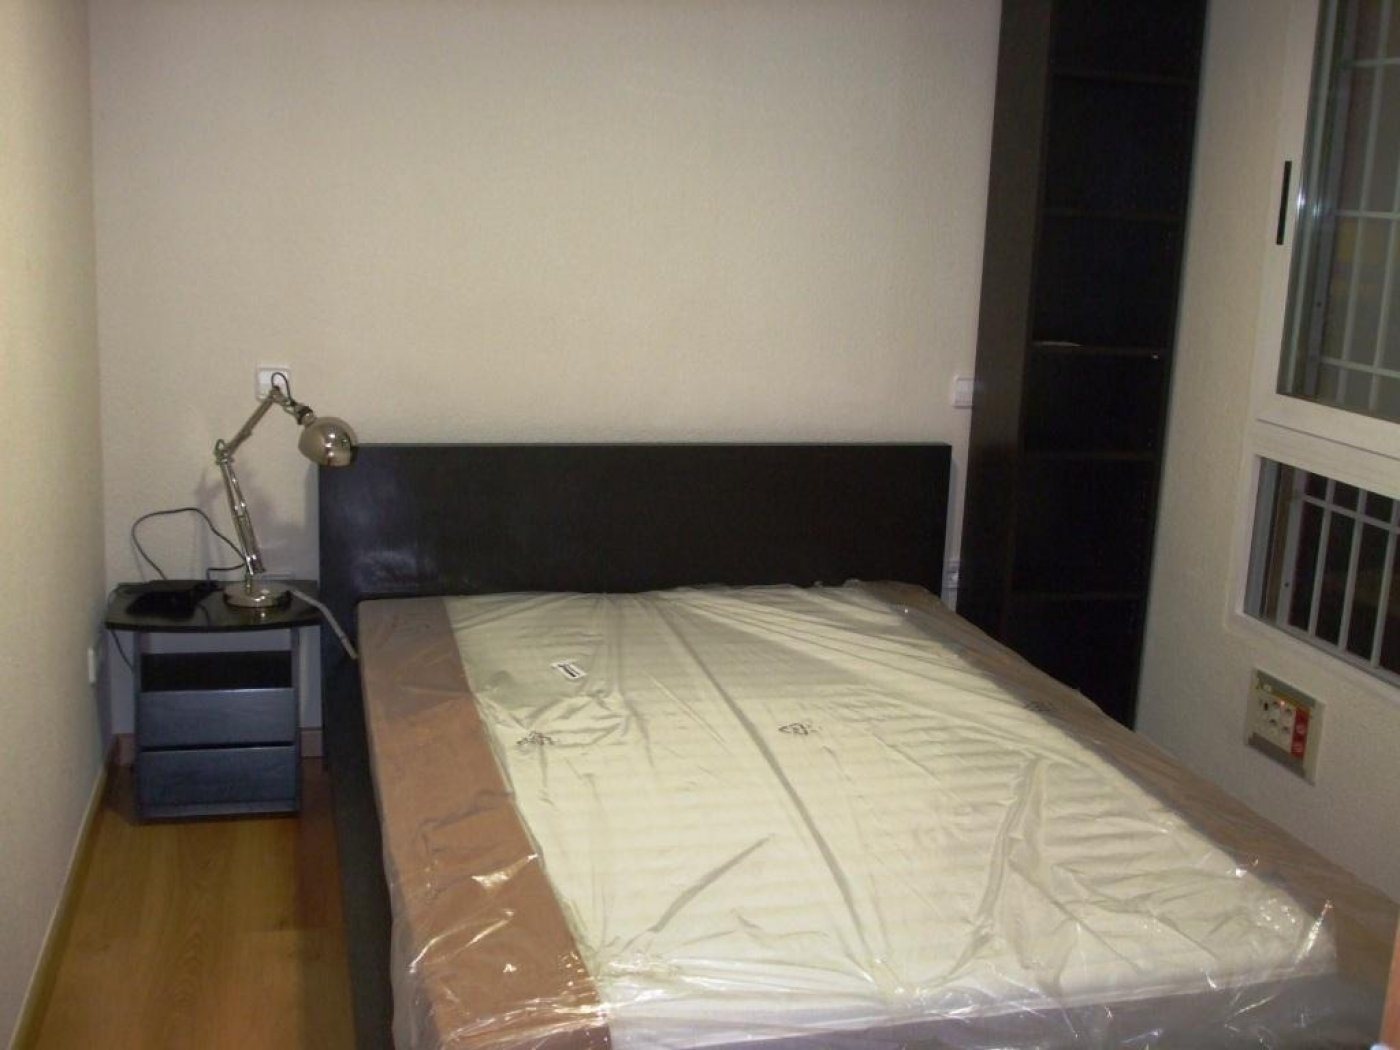 Gallery Image 4 of Flat For rent in Catedral, Murcia